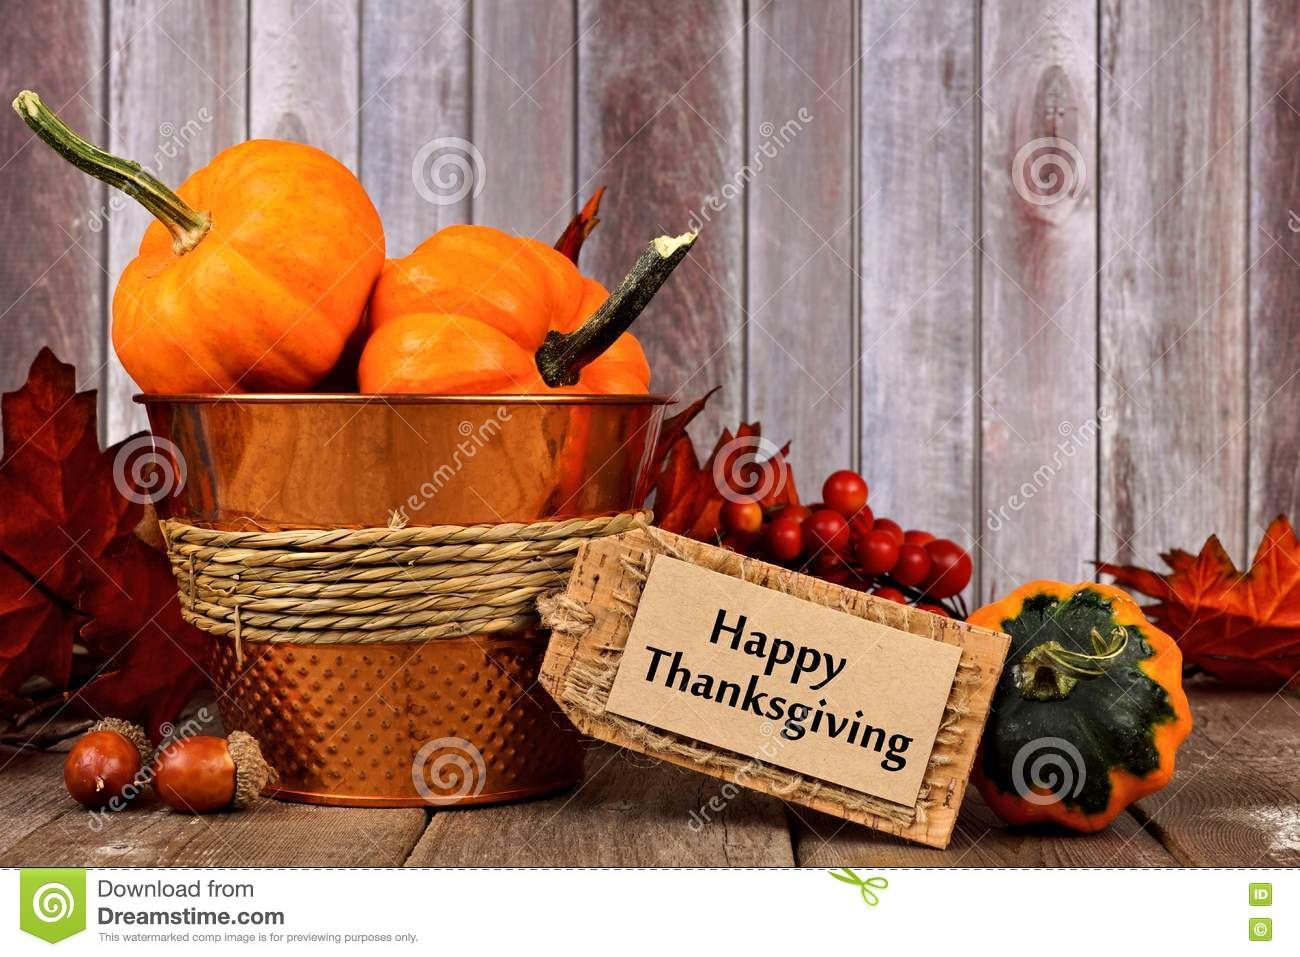 Download Happy Thanksgiving Tag And Autumn Decor With Rustic Wood Background Stock Image